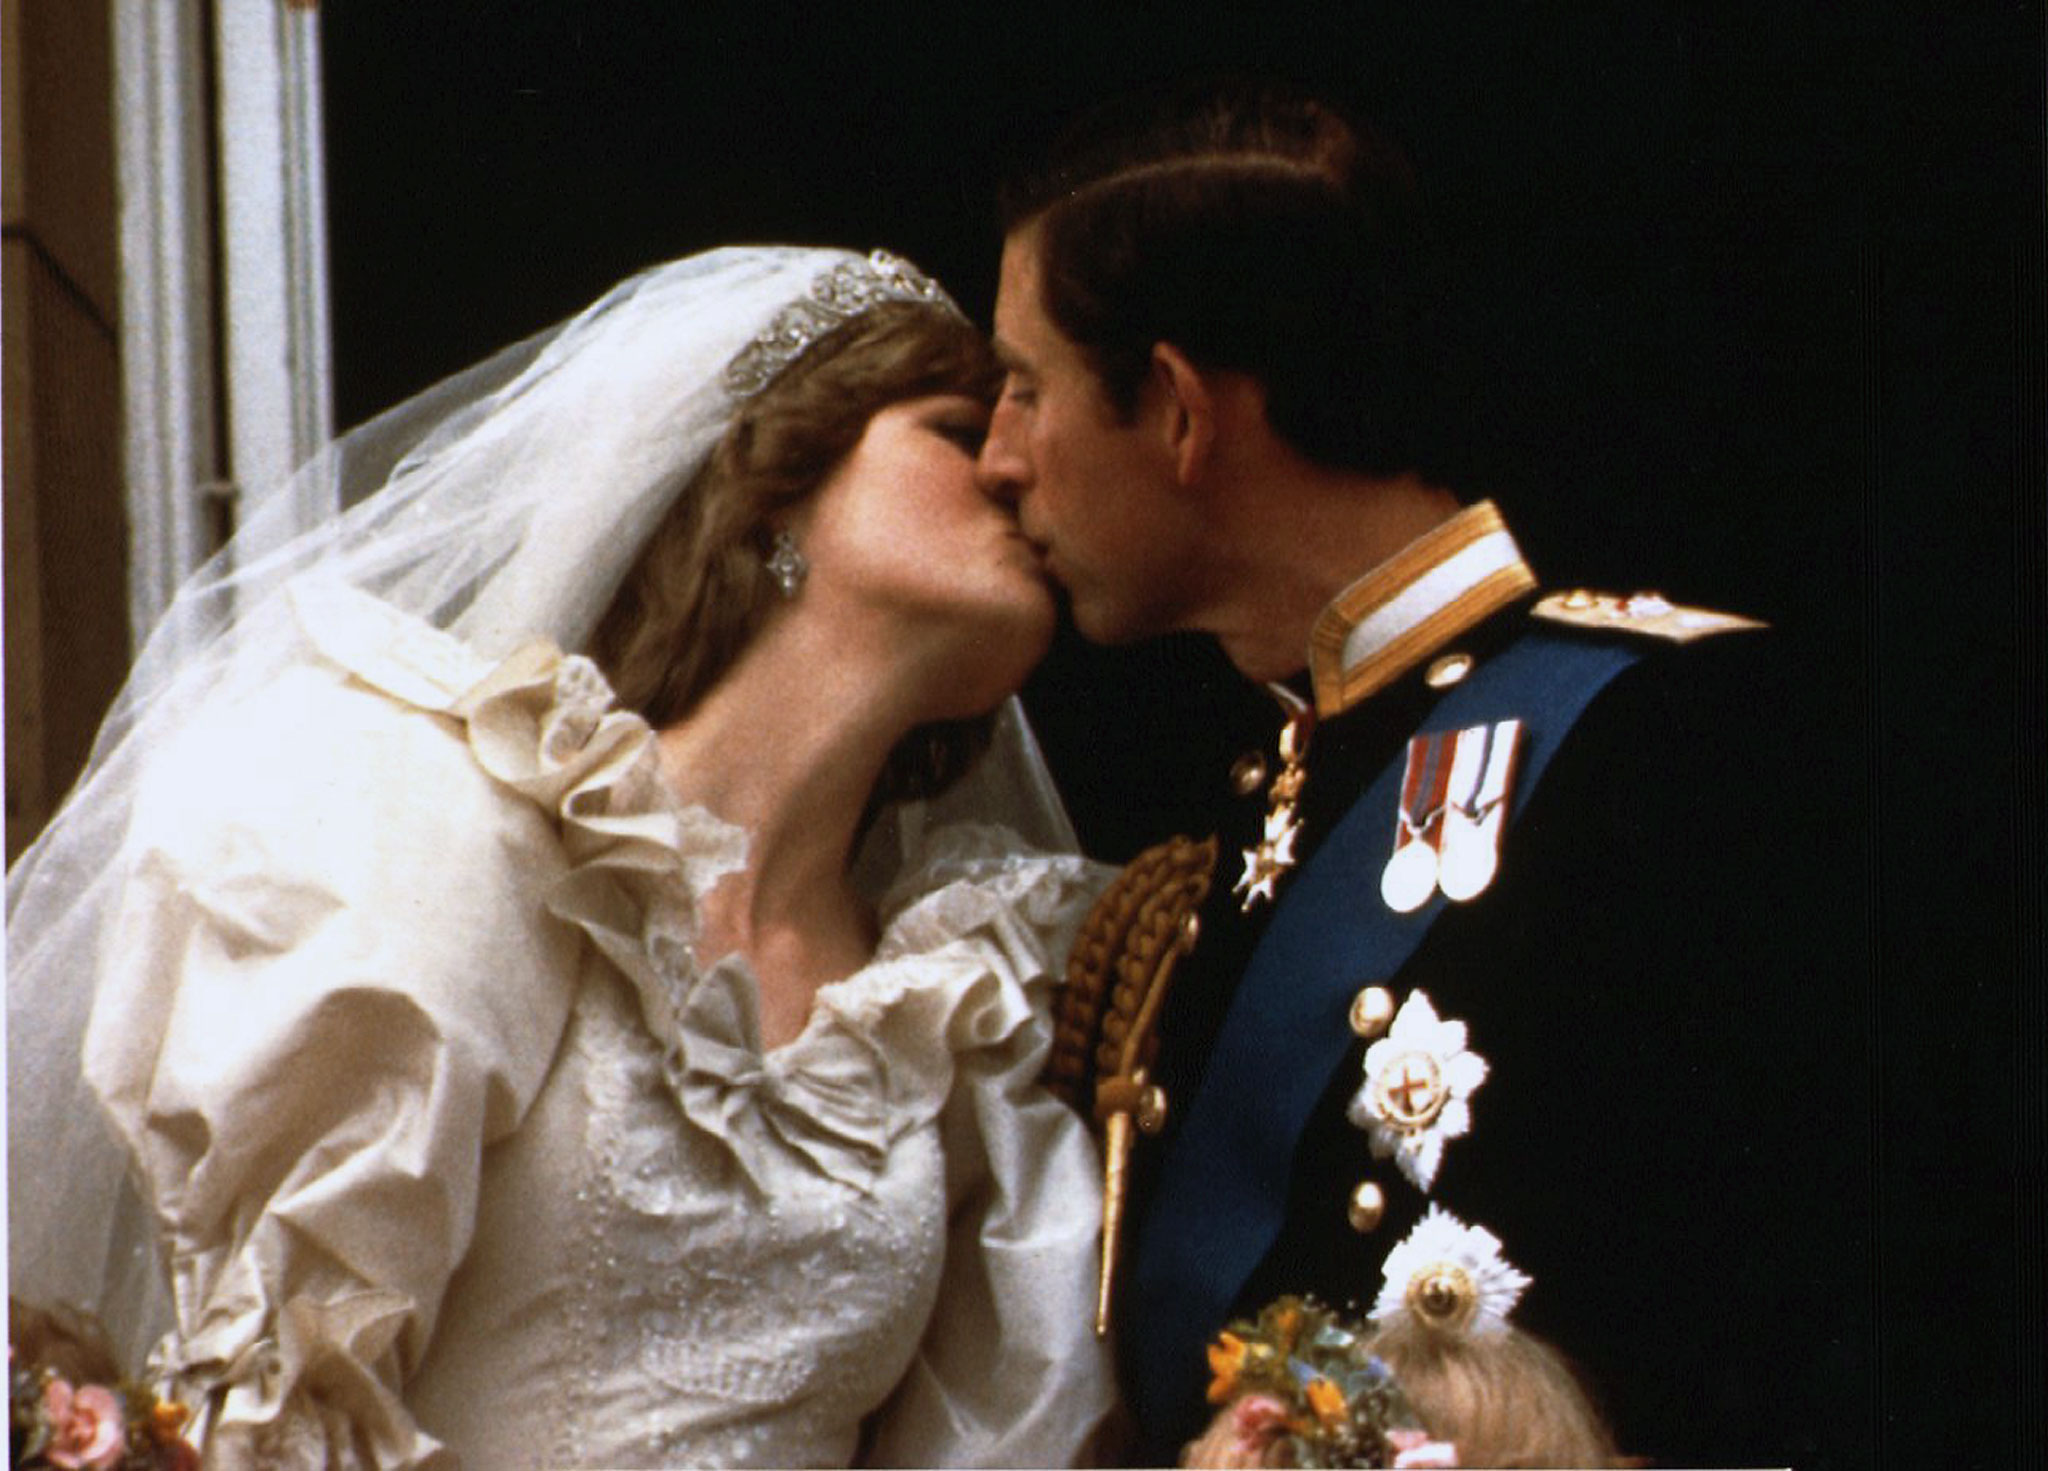 Prince Charles kisses his new bride Diana on their wedding day on July 29, 1981. Photo by Reuters